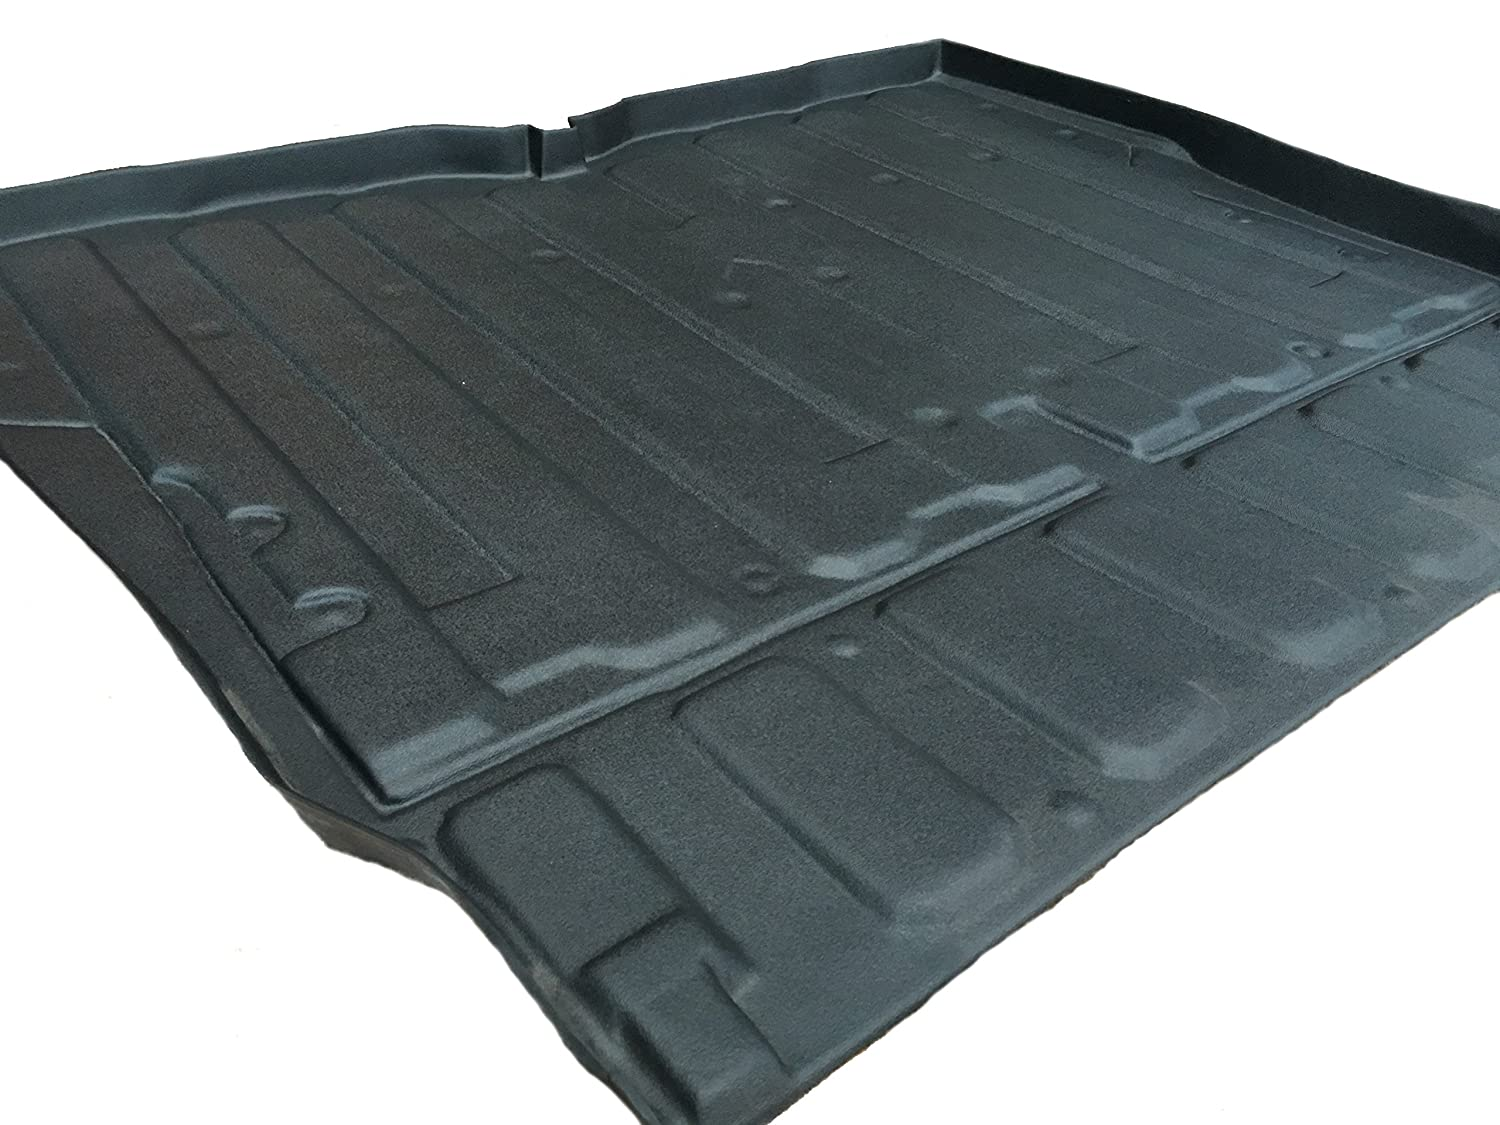 New Rubber Bed Mat Liner Honda Pioneer 2016 2018 Sxs Cargo Tray 1000 M5 5 Seater Automotive